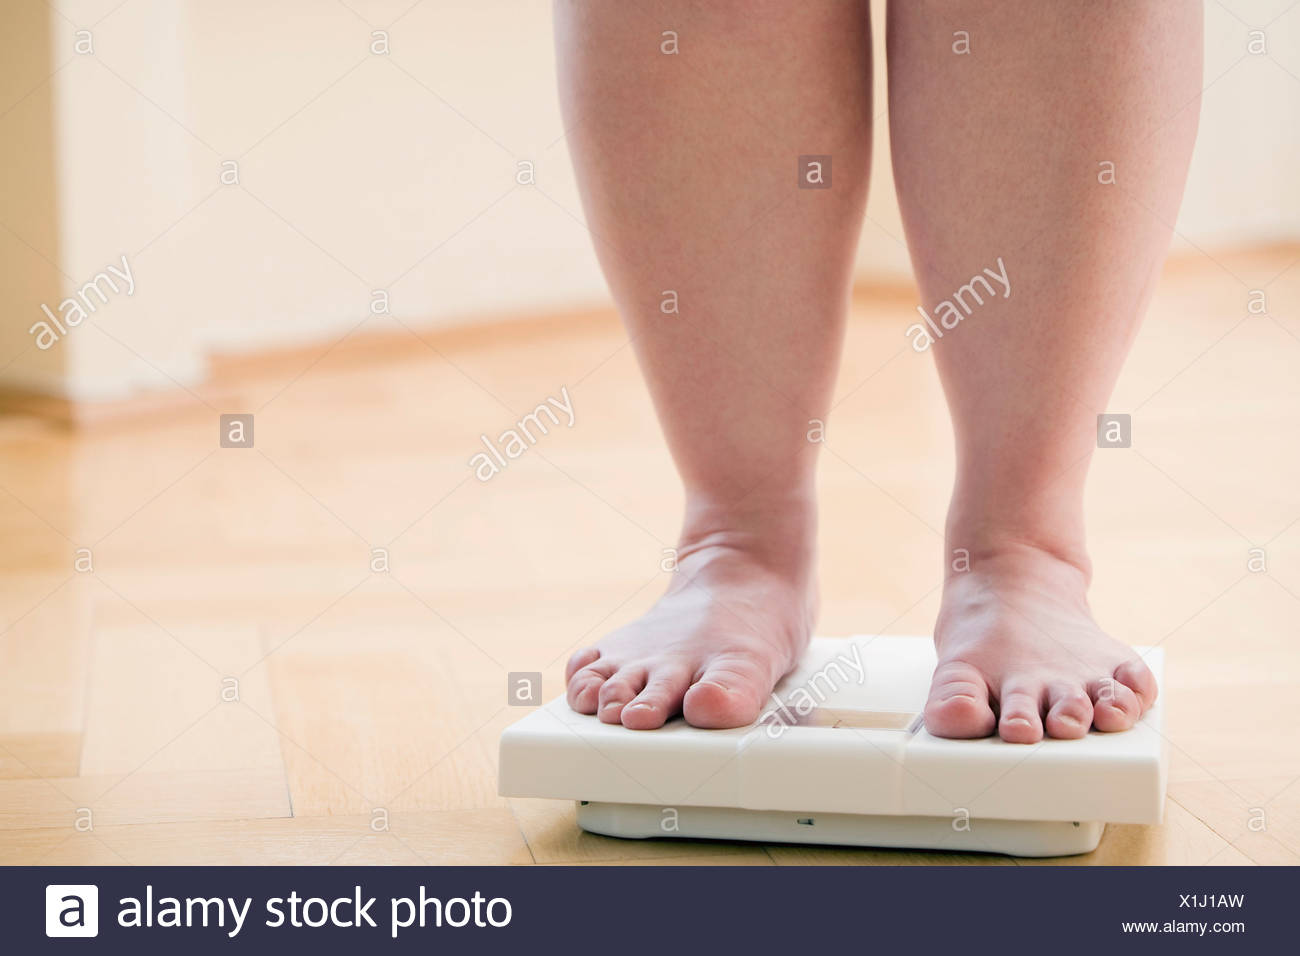 legs of overweight woman checking her weight on bathroom scales - Stock Image